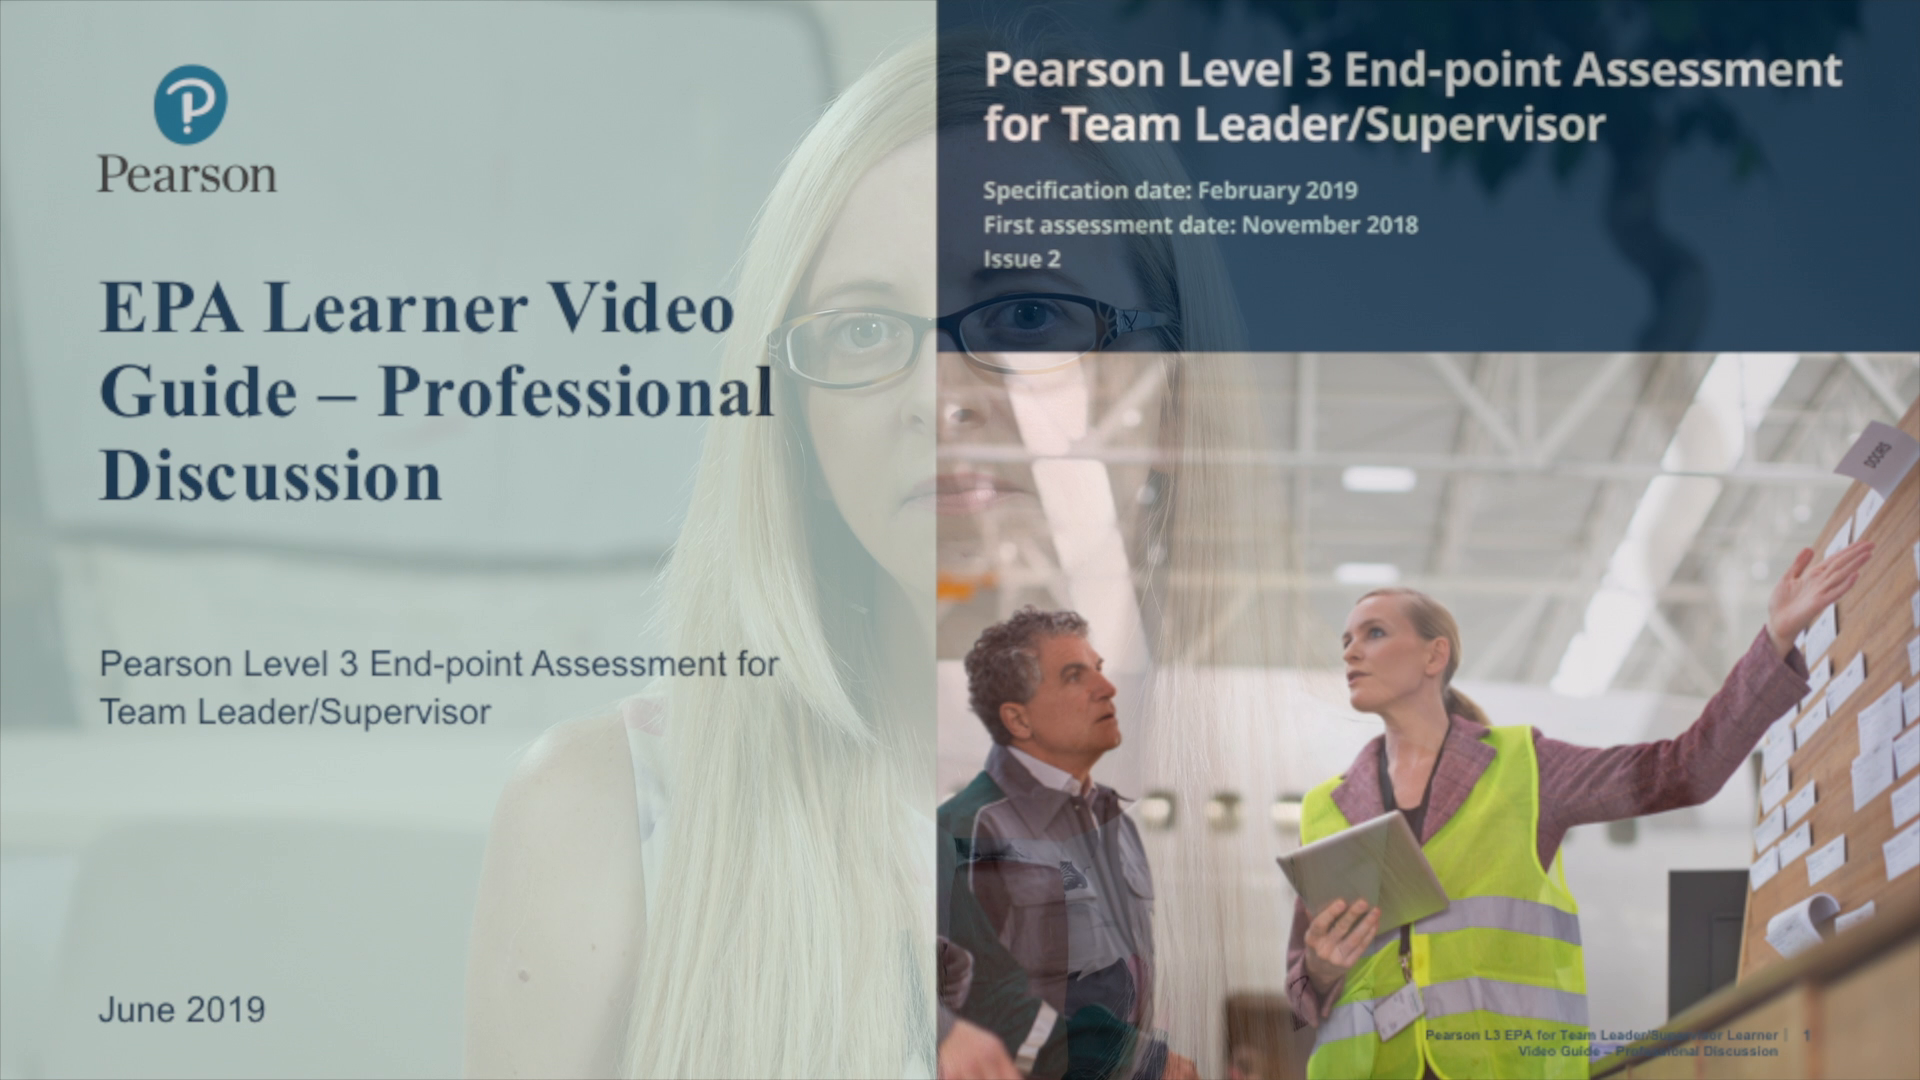 Pearson EPA Learner Video Guide: Team Leader - Professional Discussion